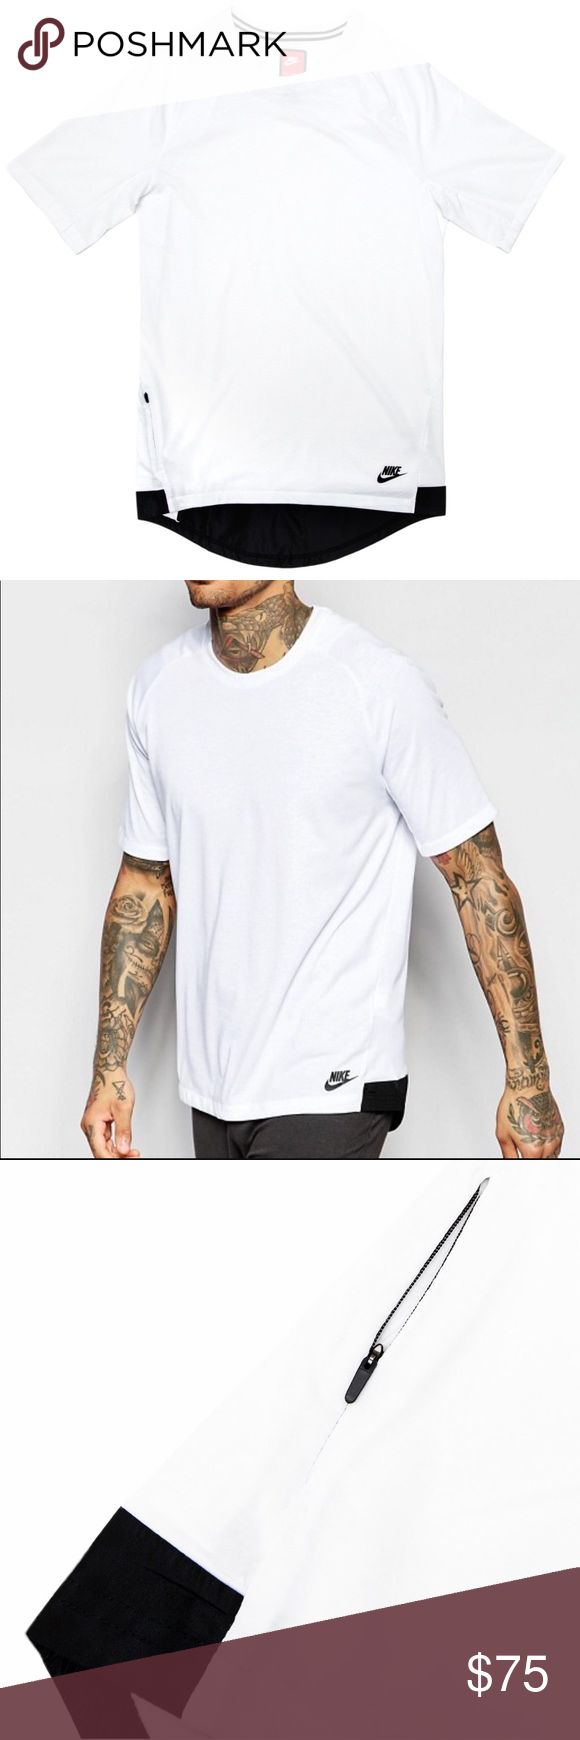 """NWT NIKE SPORTSWEAR BONDED T MENS SIZE XS & XL BRAND NEW MENS SPORTSWEAR BONDED TEE SHIRT MENS SIZE XS AND XL! 100% AUTHENTIC.   """"NO TRADES""""  ALL DISRESPECTFUL OFFERS GET BLOCKED!!!   ALSO, I DO NOT DISCUSS PRICING IN THE COMMENTS EVER!!!!  SHIPS SAME OR NEXT DAY FROM MY SMOKE FREE HOME.   REASONABLE OFFERS WILL ONLY BE CONSIDERED THROUGH THE OFFER BUTTON. ANY OFFERS IN COMMENTS WILL BE IGNORED.   BUNDLE DISCOUNT SUBJECT TO MY APPROVAL. ✨   TRUSTED RELIABLE SELLER. ALL PRODUCT IS 100%…"""